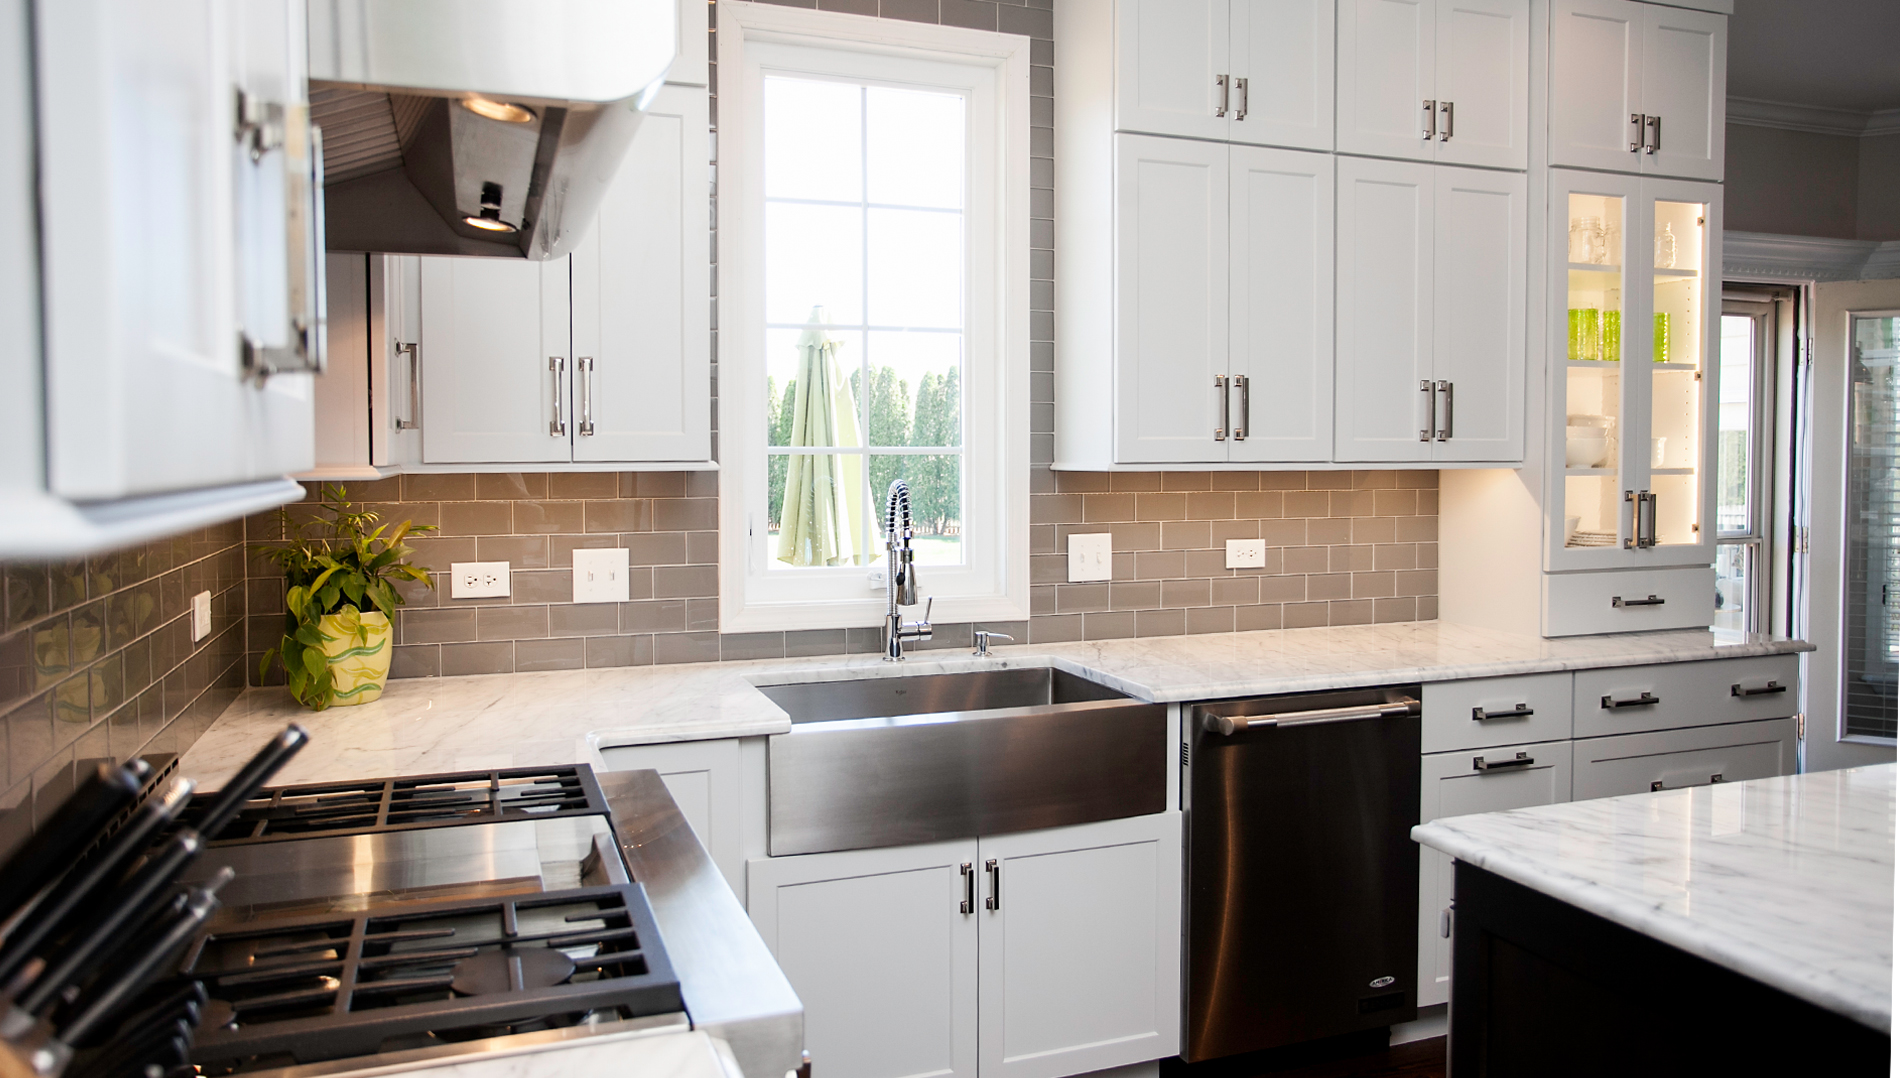 Stylish Transitional Kitchen Design & Remodeling Naperville